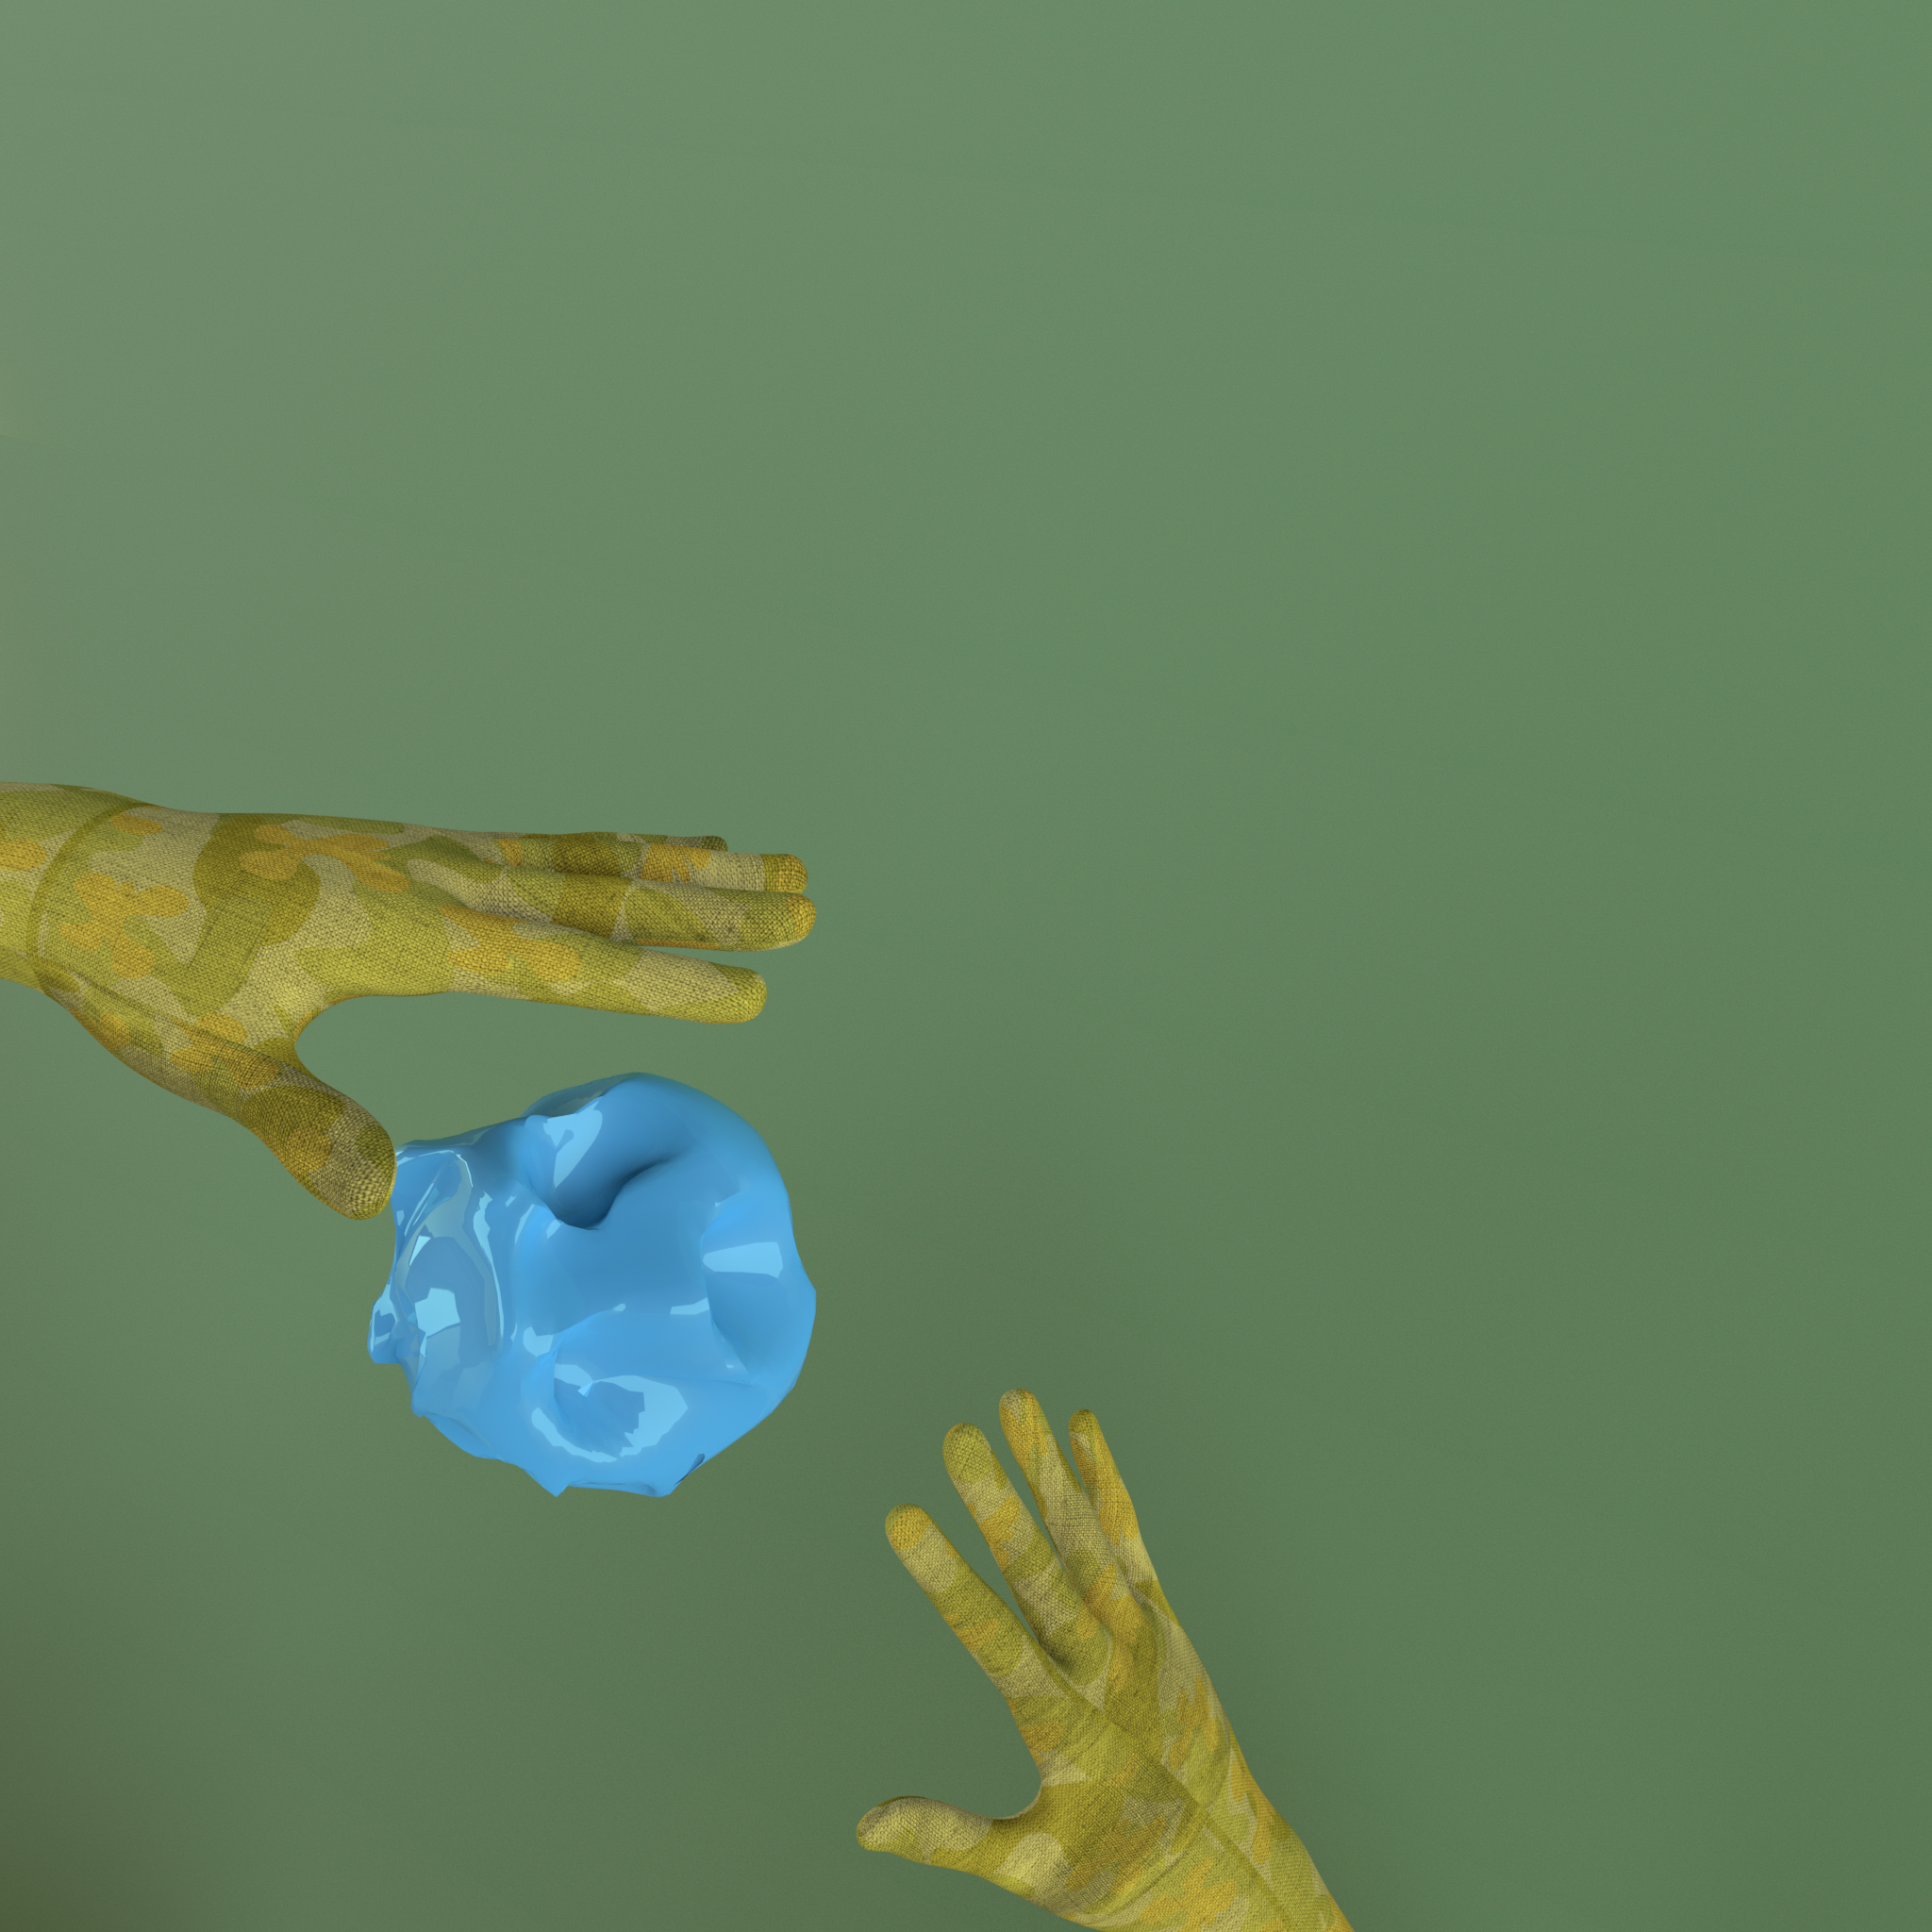 3d render of hand-clay connection